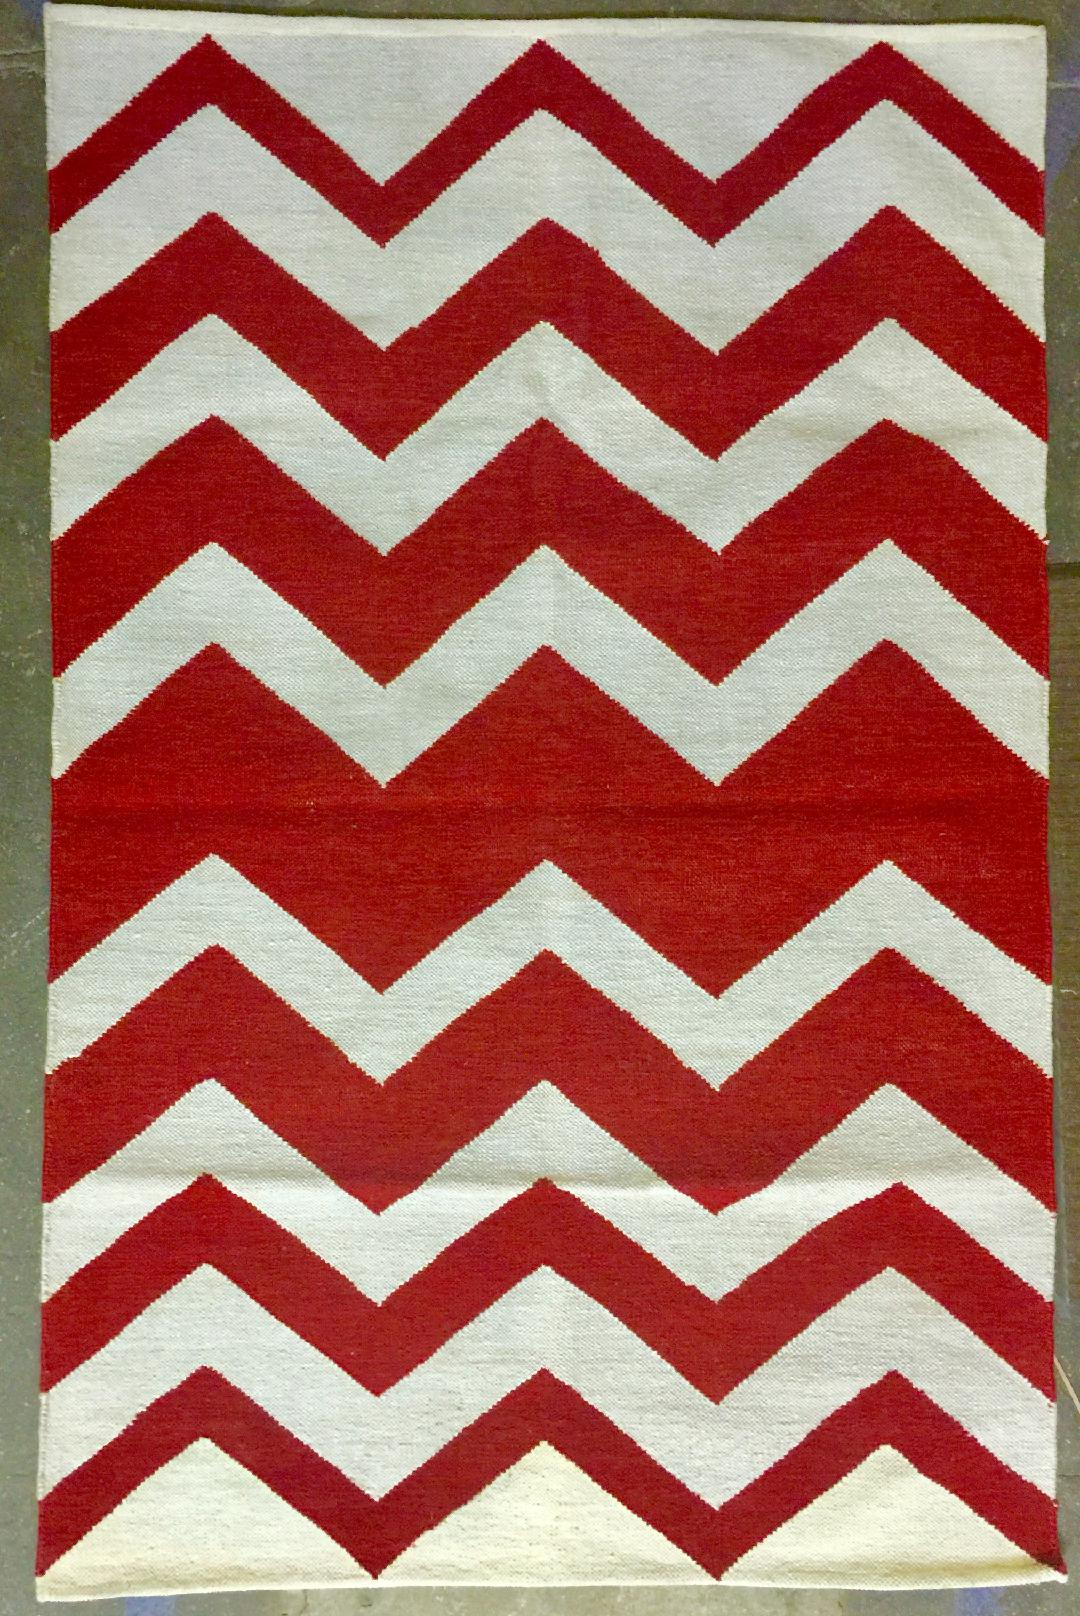 Indoor/Outdoor 14203 handwoven polyurethane rug. SAVE 50% AT CHECKOUT WITH DISCOUNT CODE SAVE50